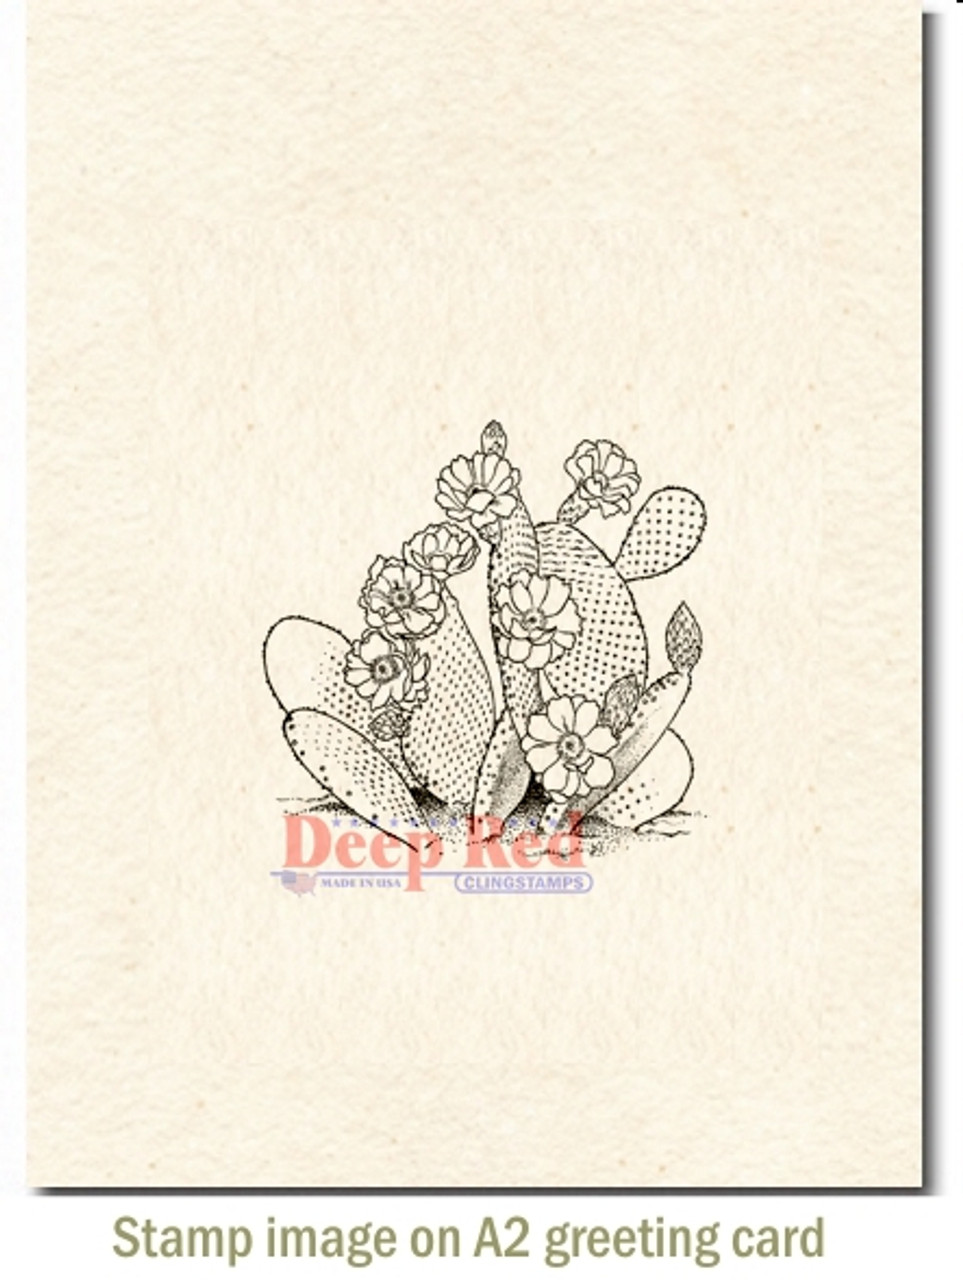 Deep Red Stamps Saguaro Cactus Rubber Cling Stamp